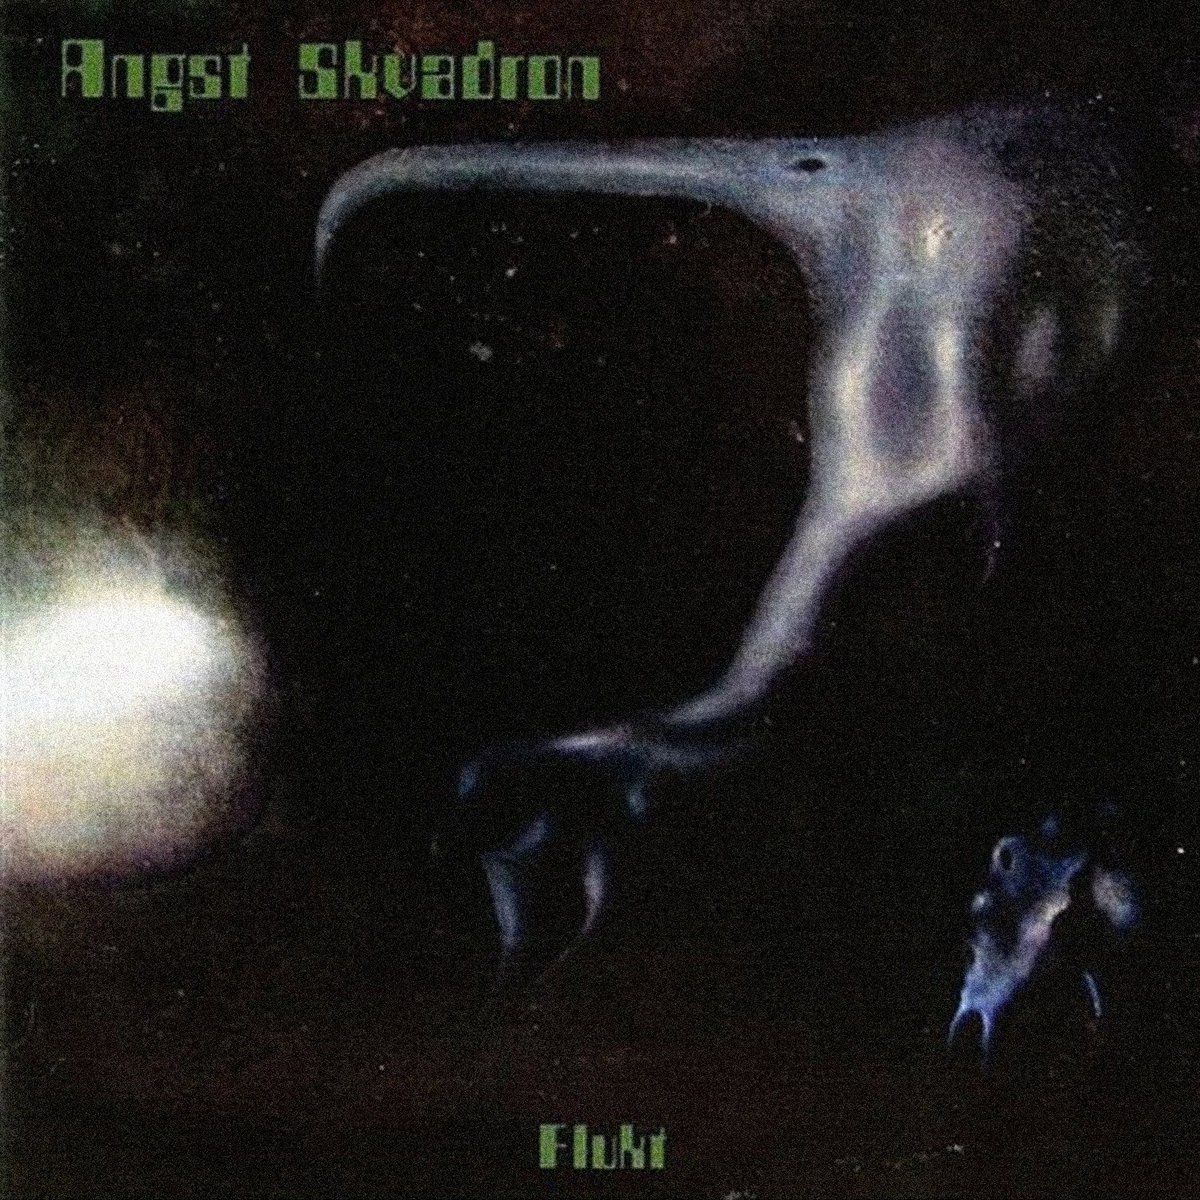 Review for Angst Skvadron - Flukt